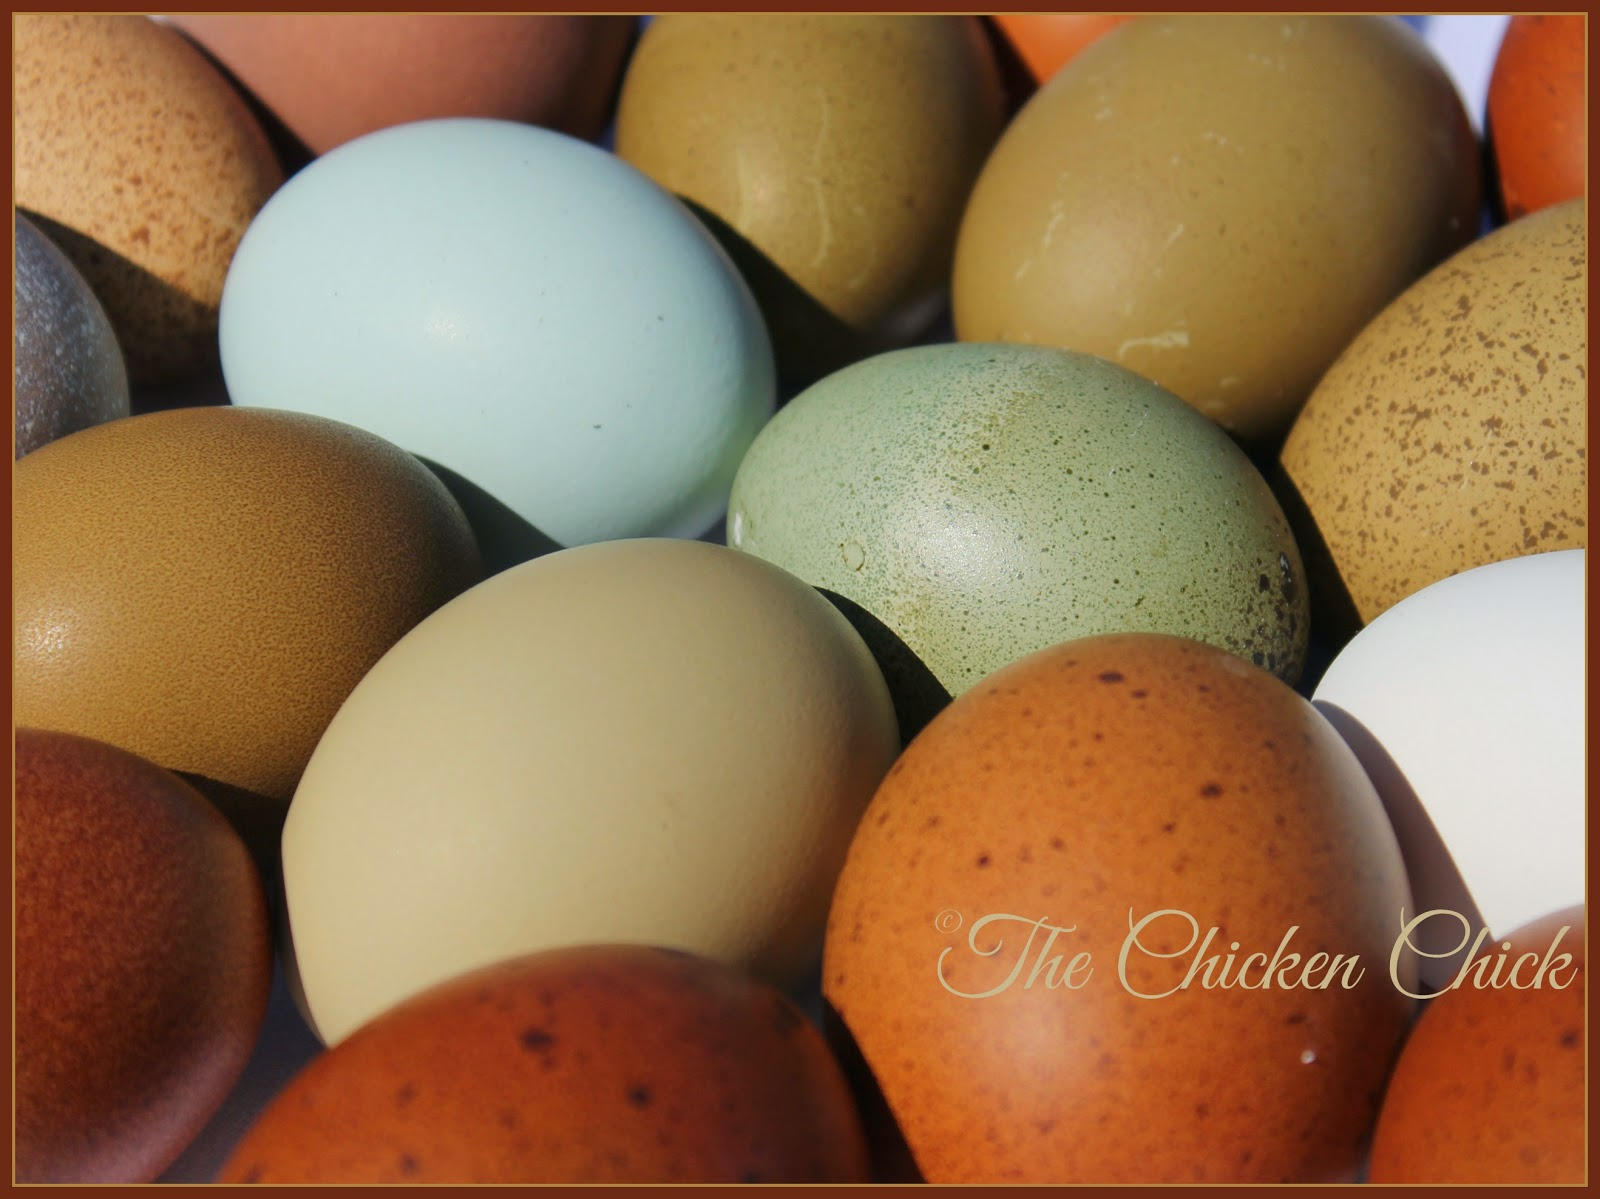 The Chicken Chick®: Fascinating Facts about Eggs with an Egg ...